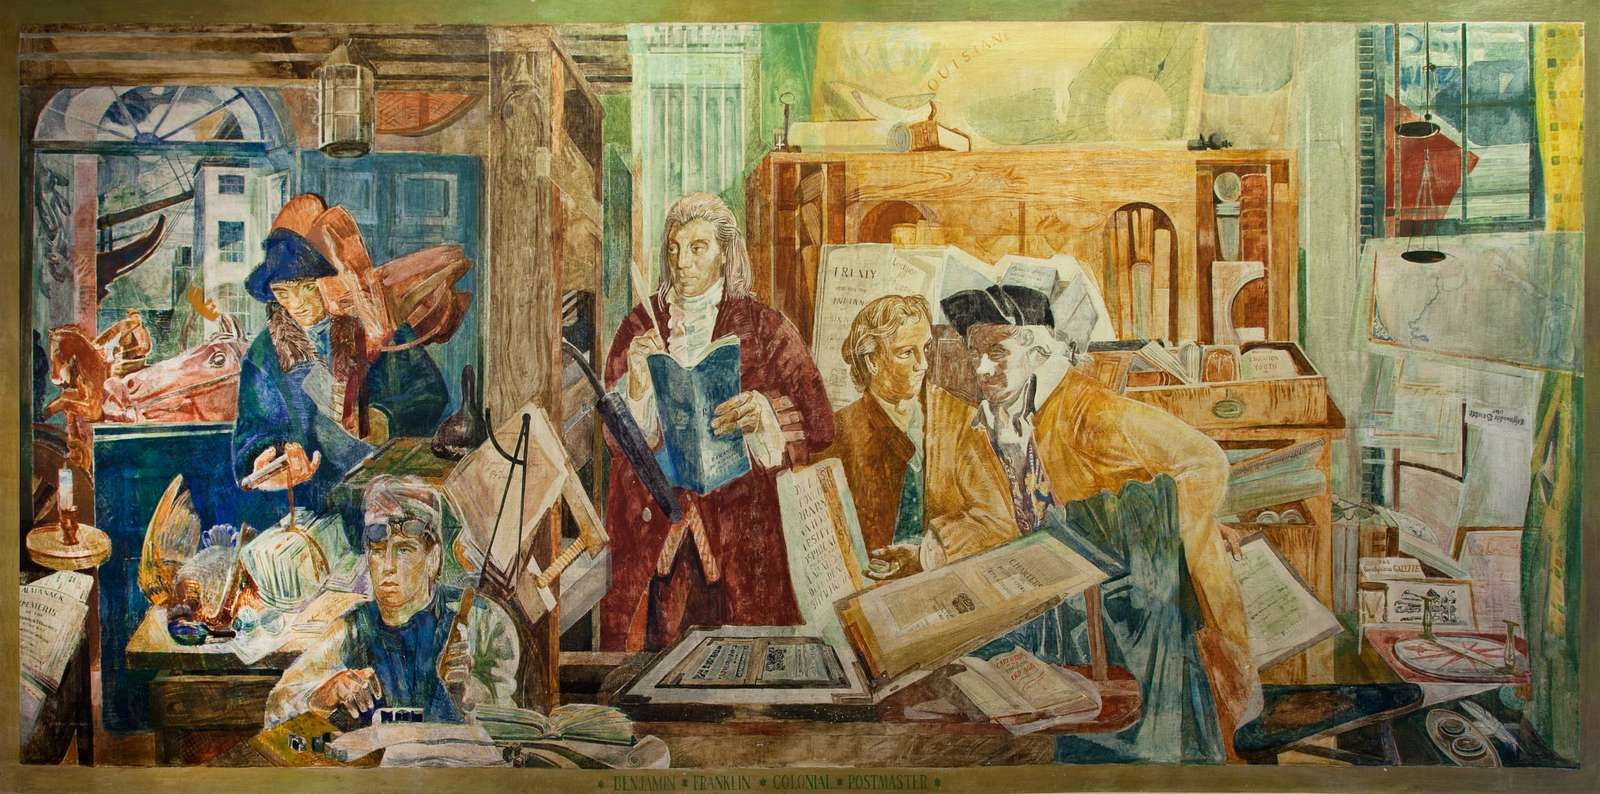 """Mural """"Ben Franklin, colonial postmaster,"""" by George Harding at the Ariel Rios Federal Building in Washington, D.C."""